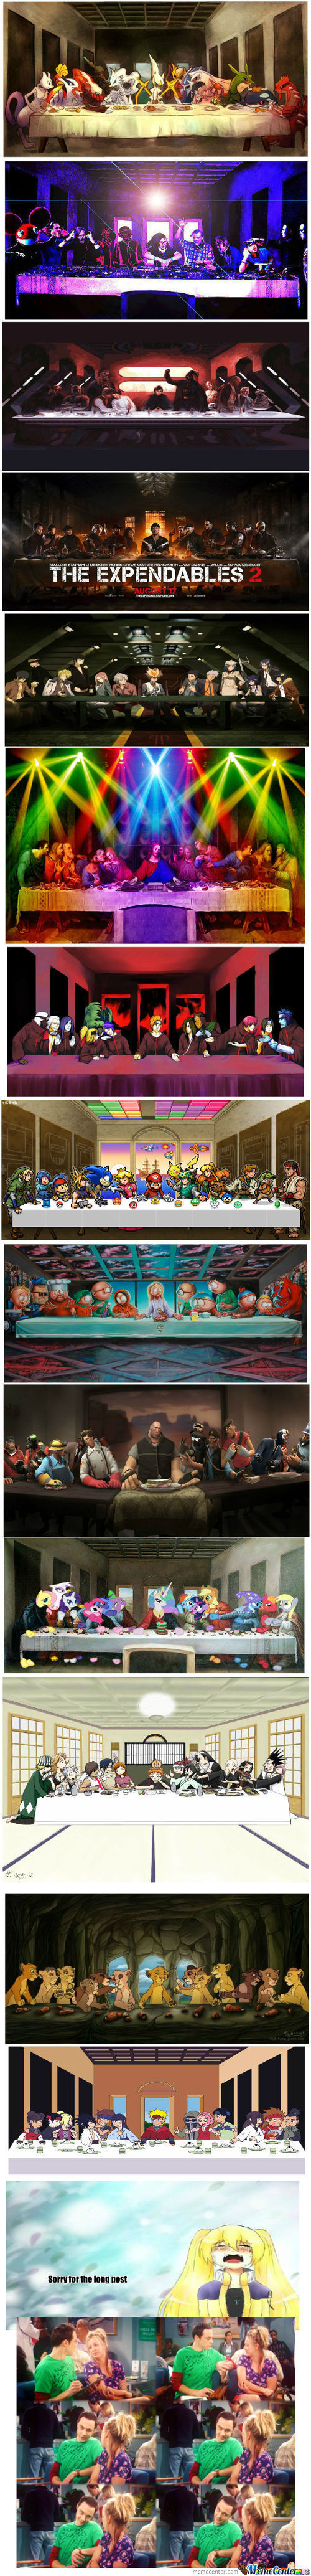 [RMX] The Last Suppers